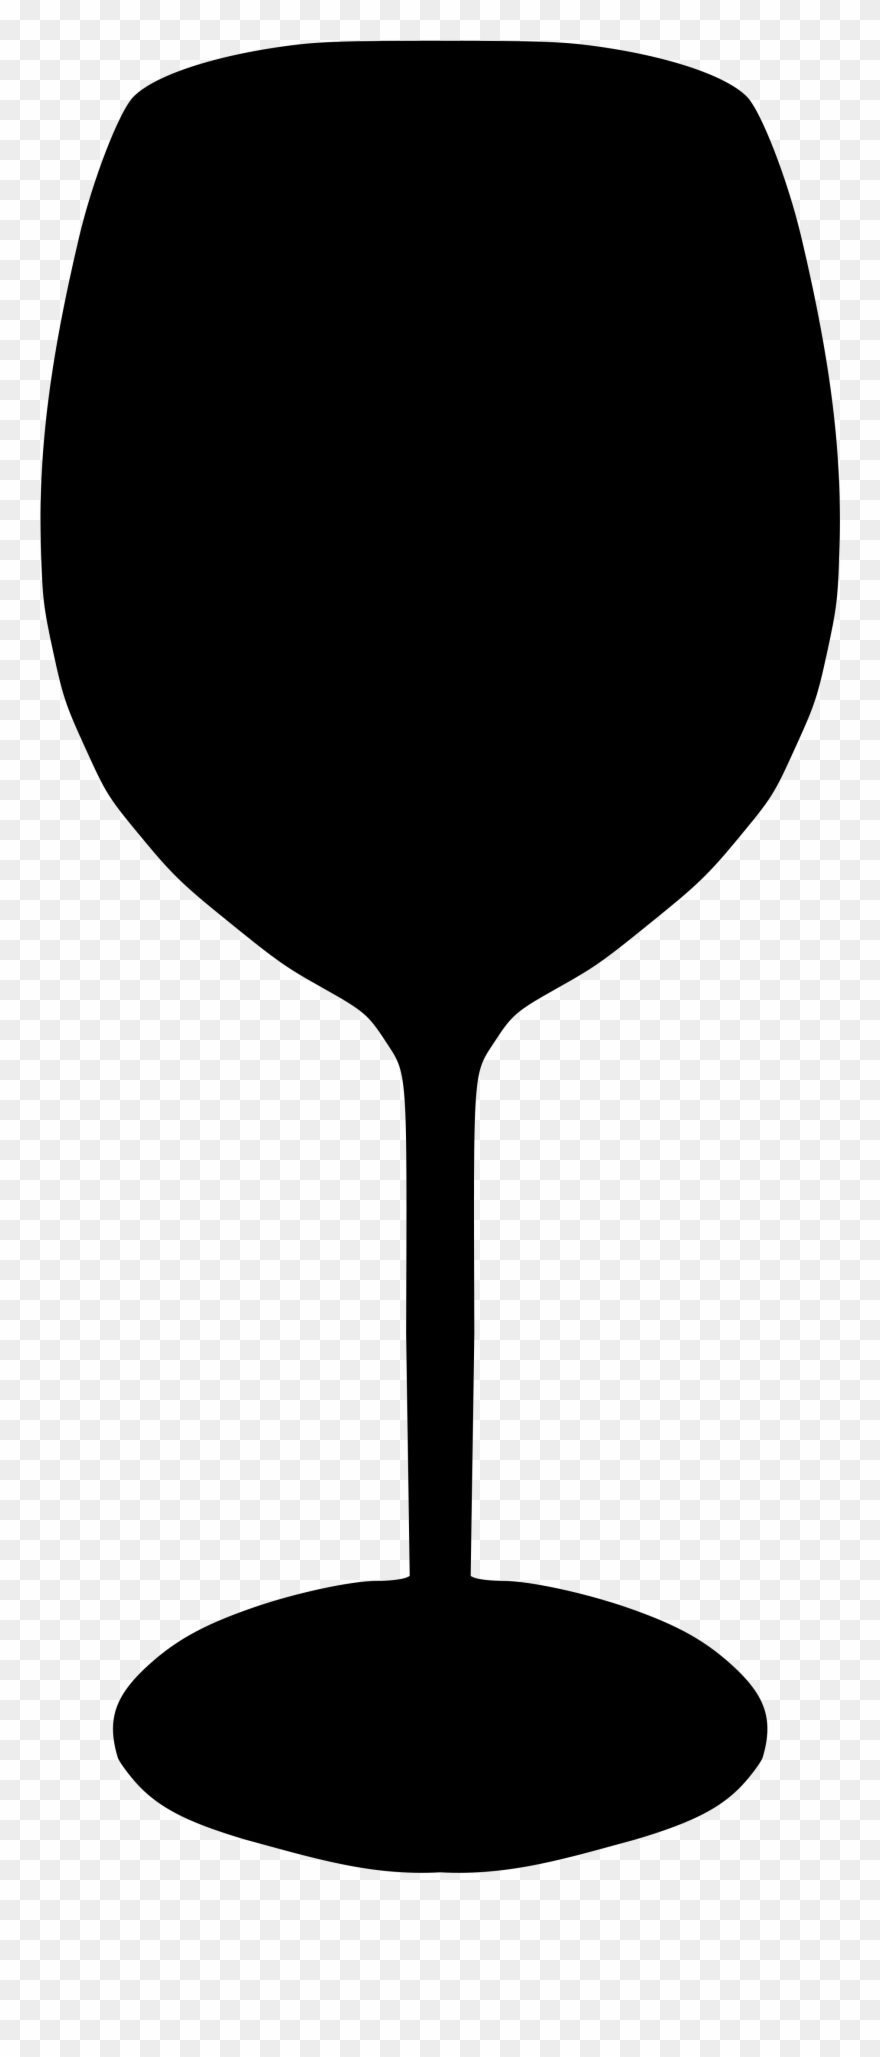 Wine Glass Svg File Free Clipart 20559 Pinclipart